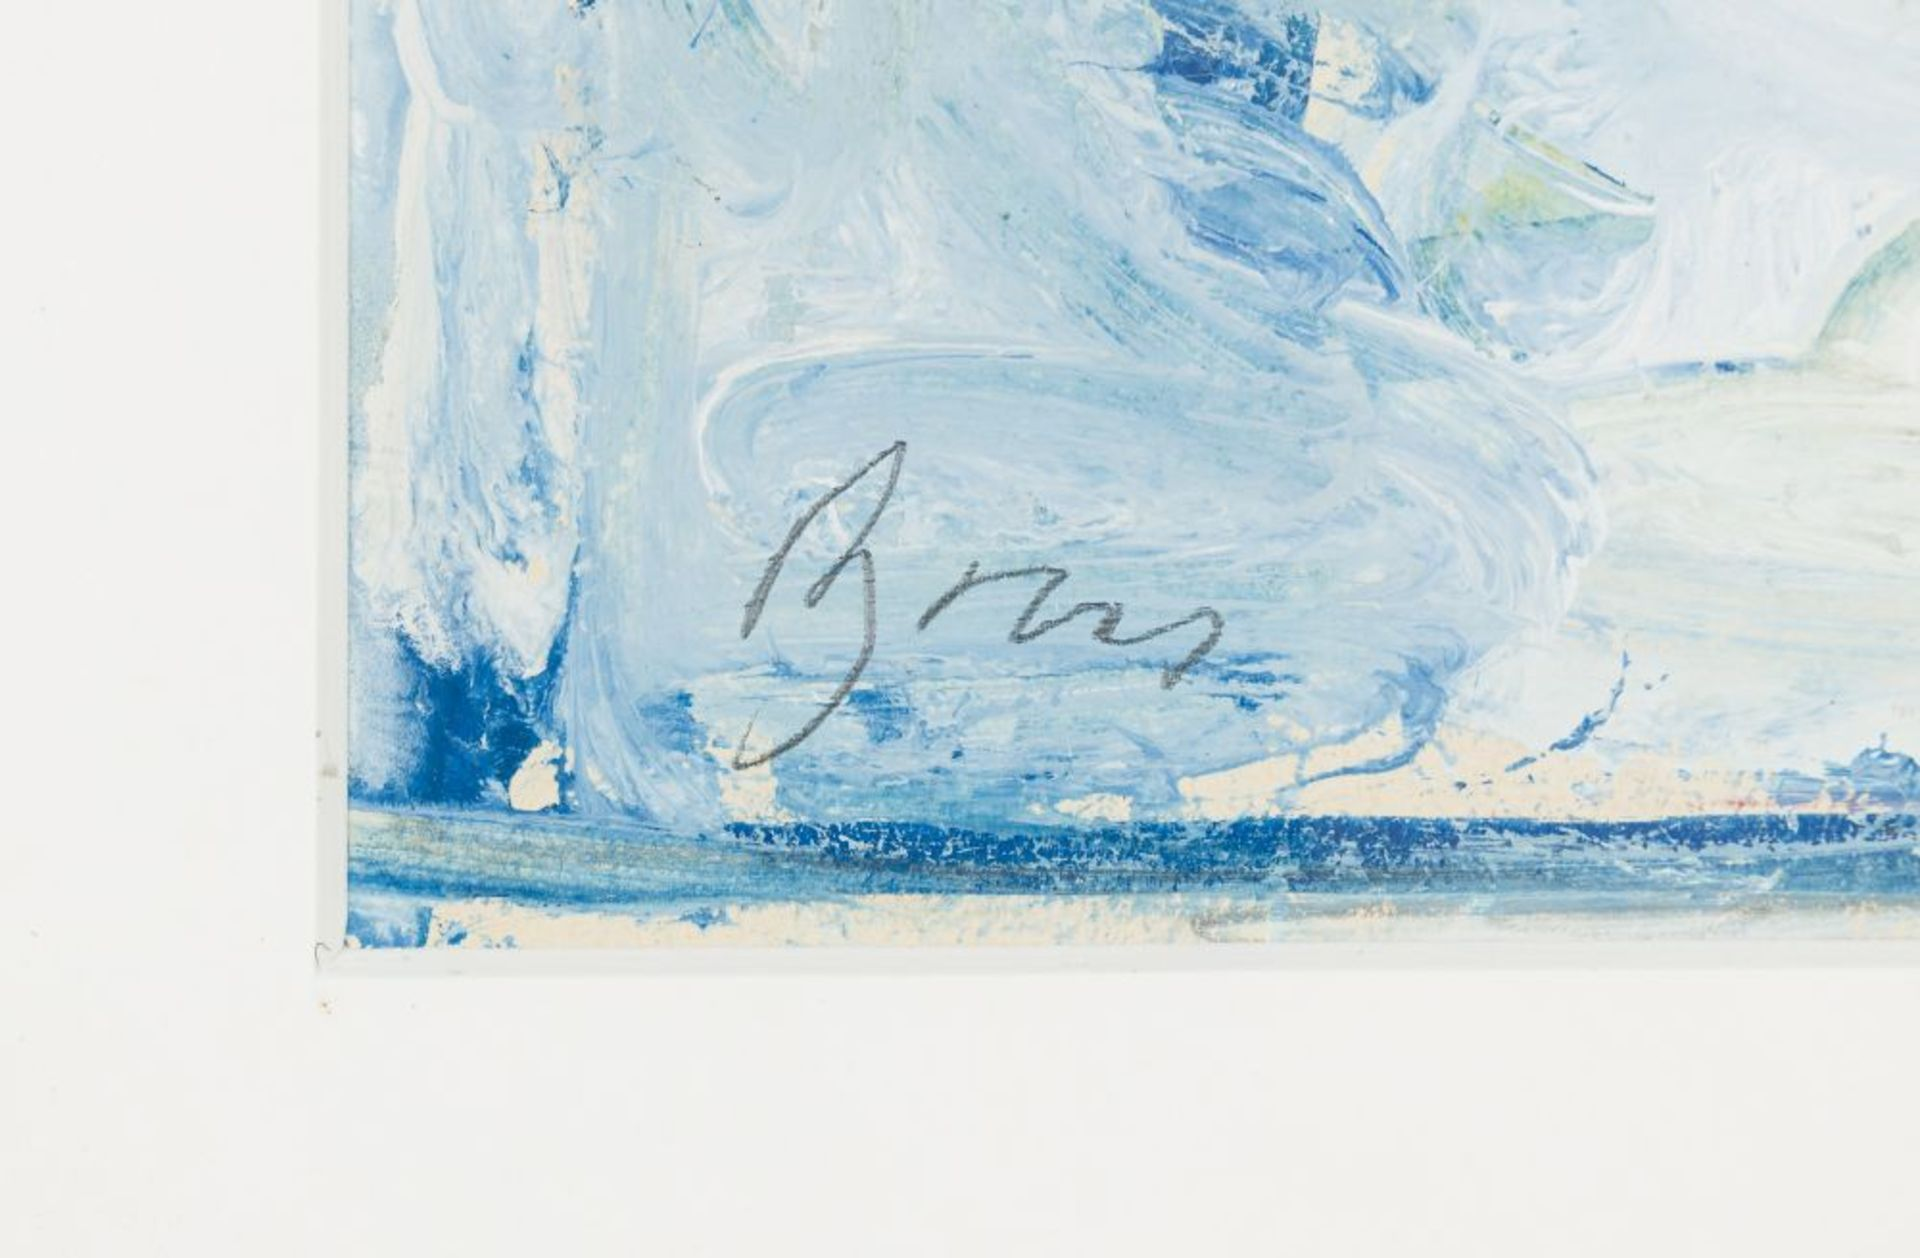 Thrush Gouache on Paper Signed lower left Passepartout Outcut unopened: 8,5 x 6,1 in framed - Image 3 of 3